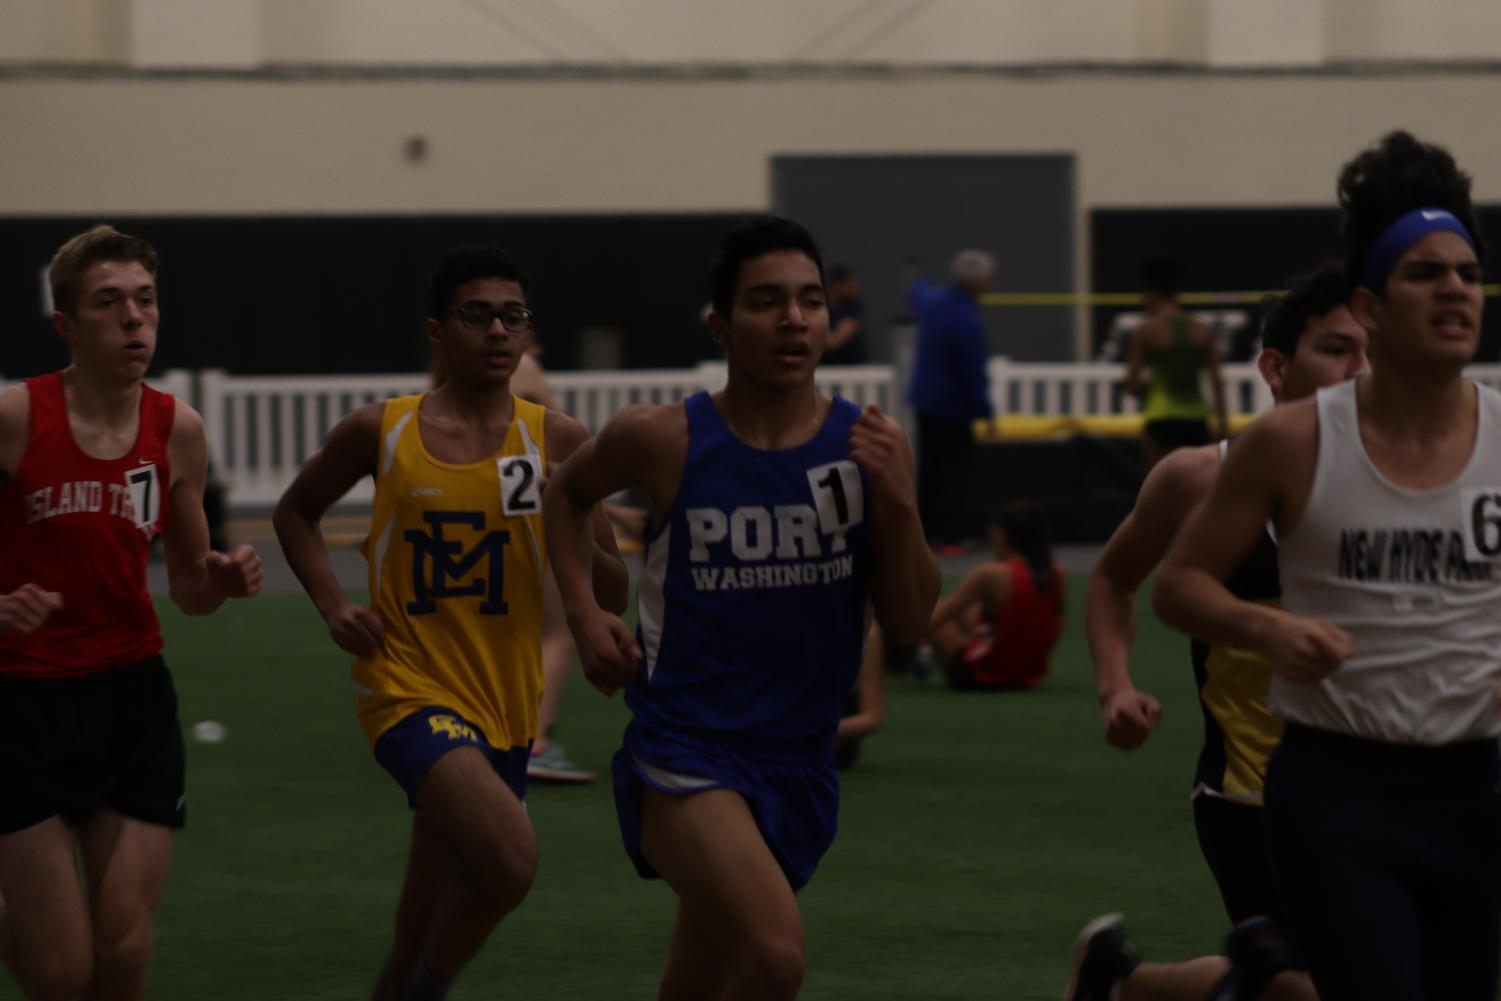 Olivar Melaria Perez competes in the 3200m race at St. Anthony's on Jan. 10.